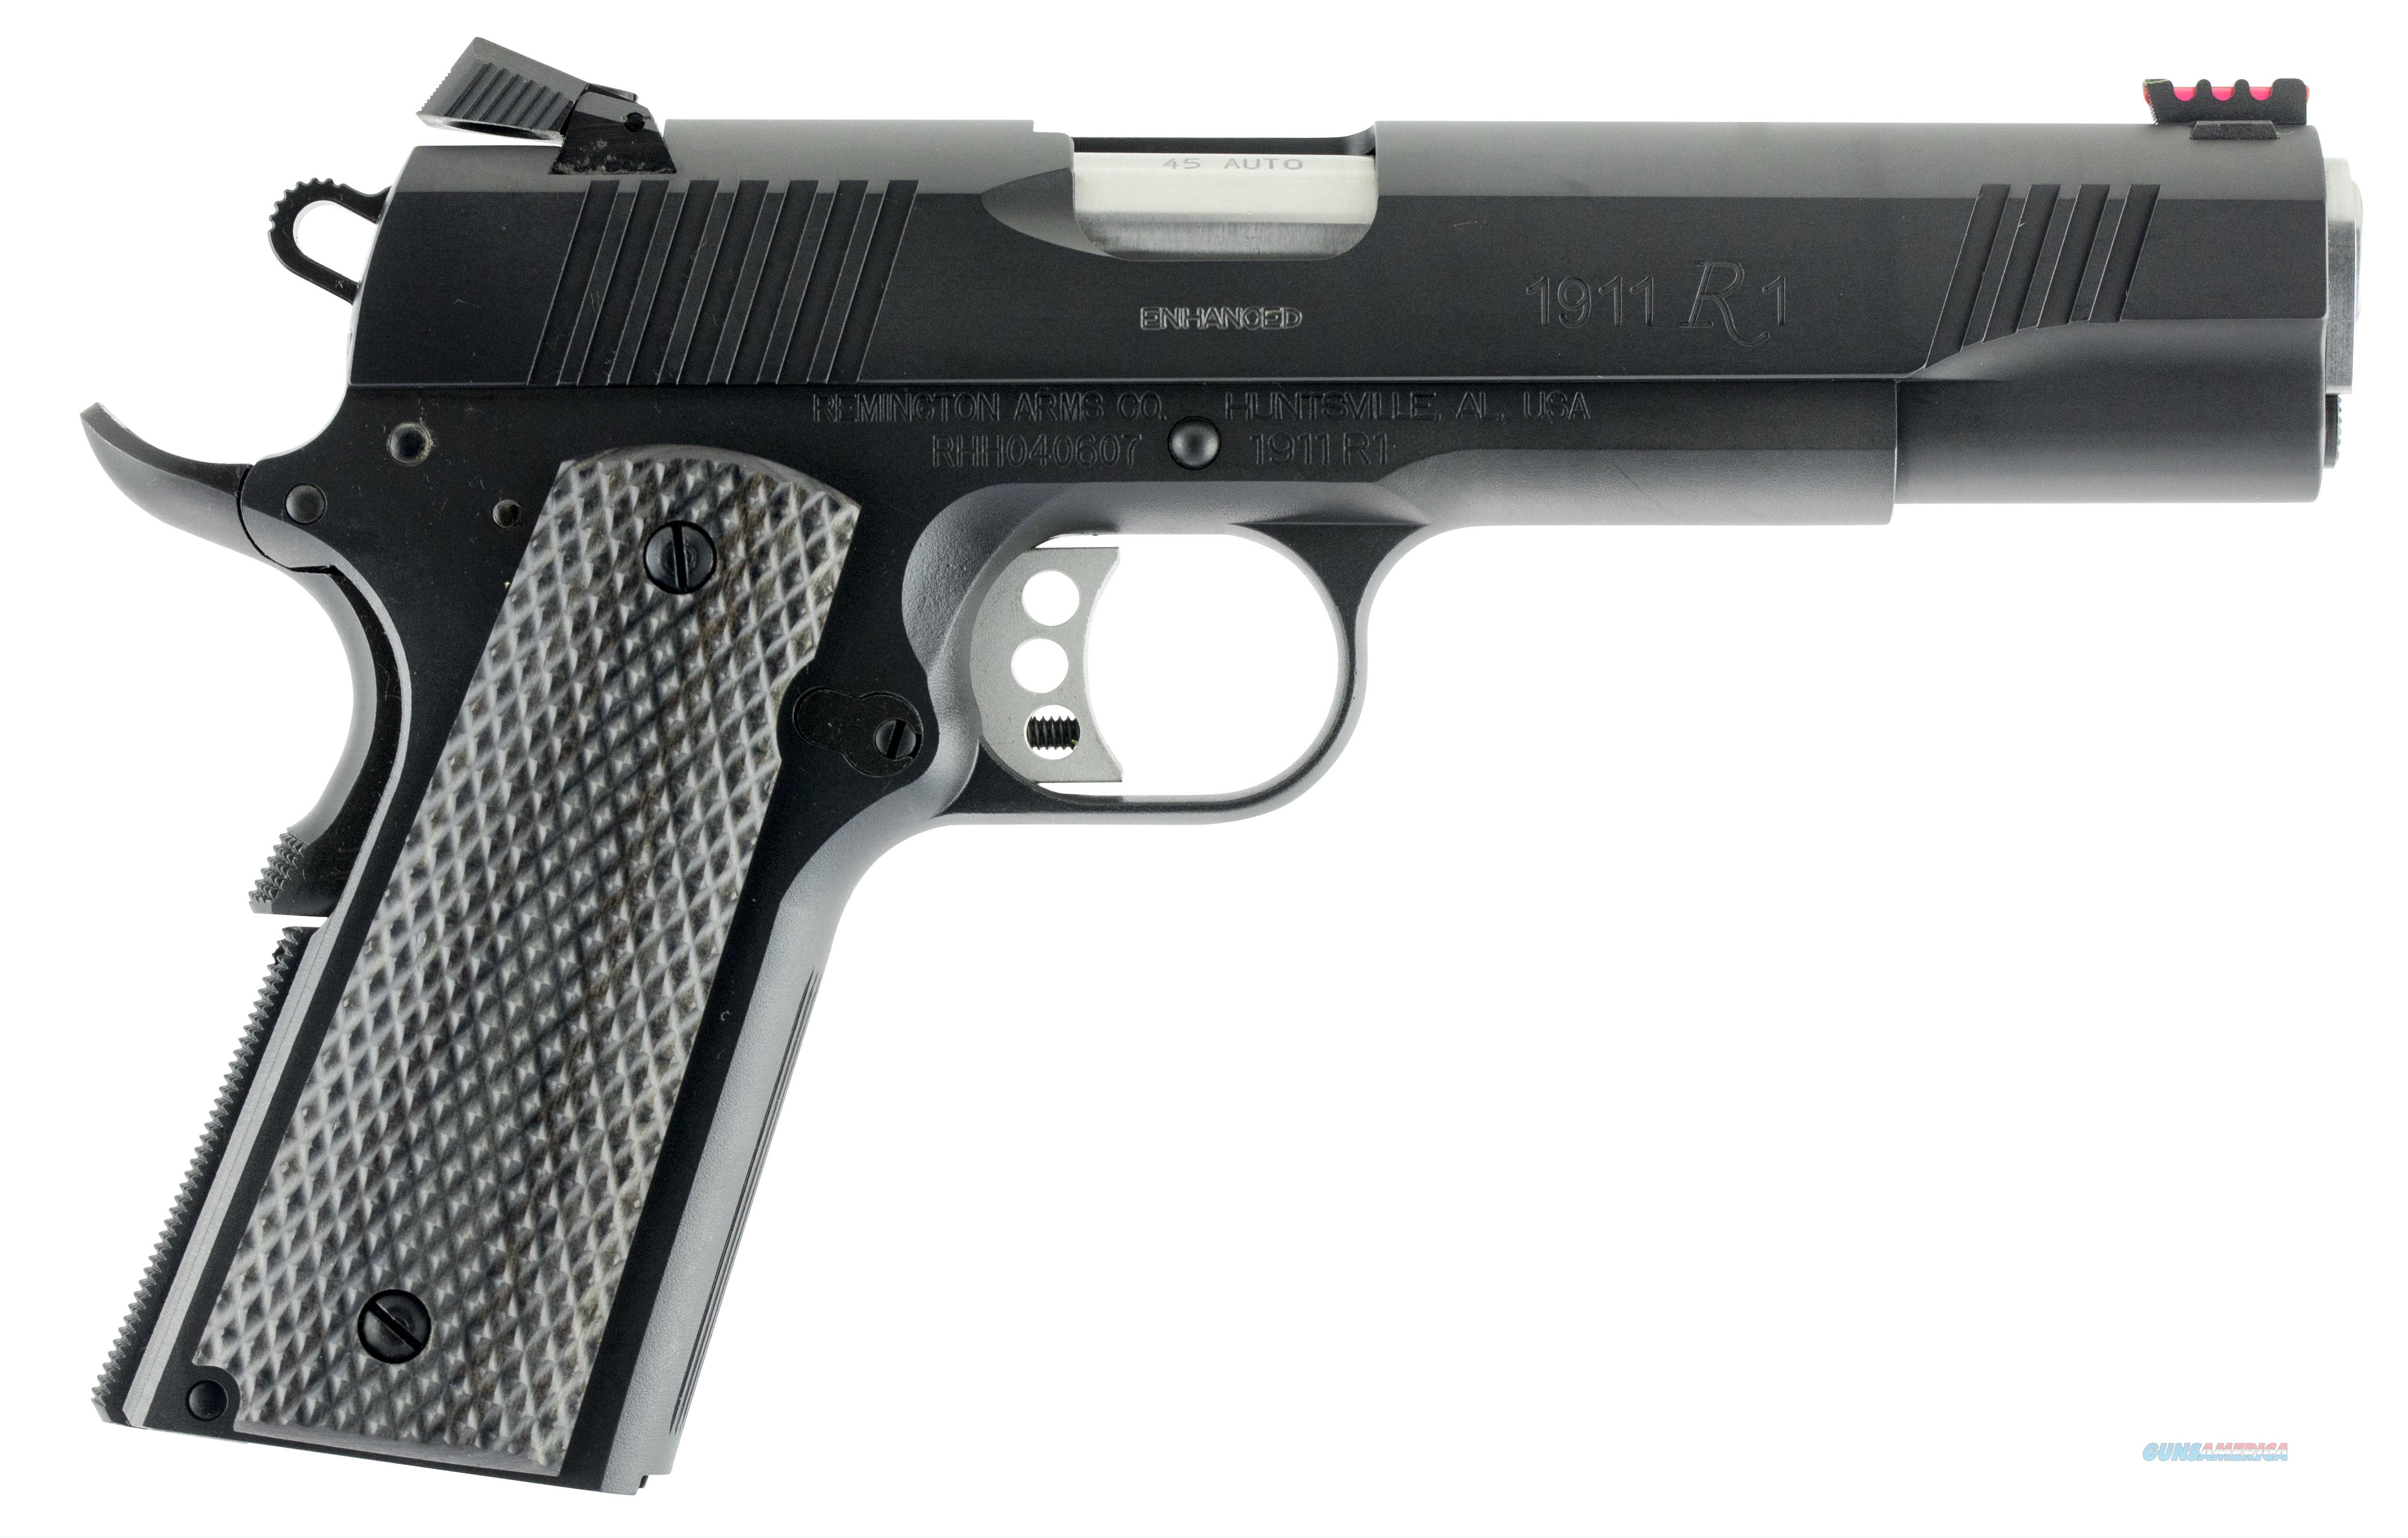 REMINGTON R1 1911 ENHANCED TG TRIG 96328  Guns > Pistols > Remington Pistols - Modern > 1911